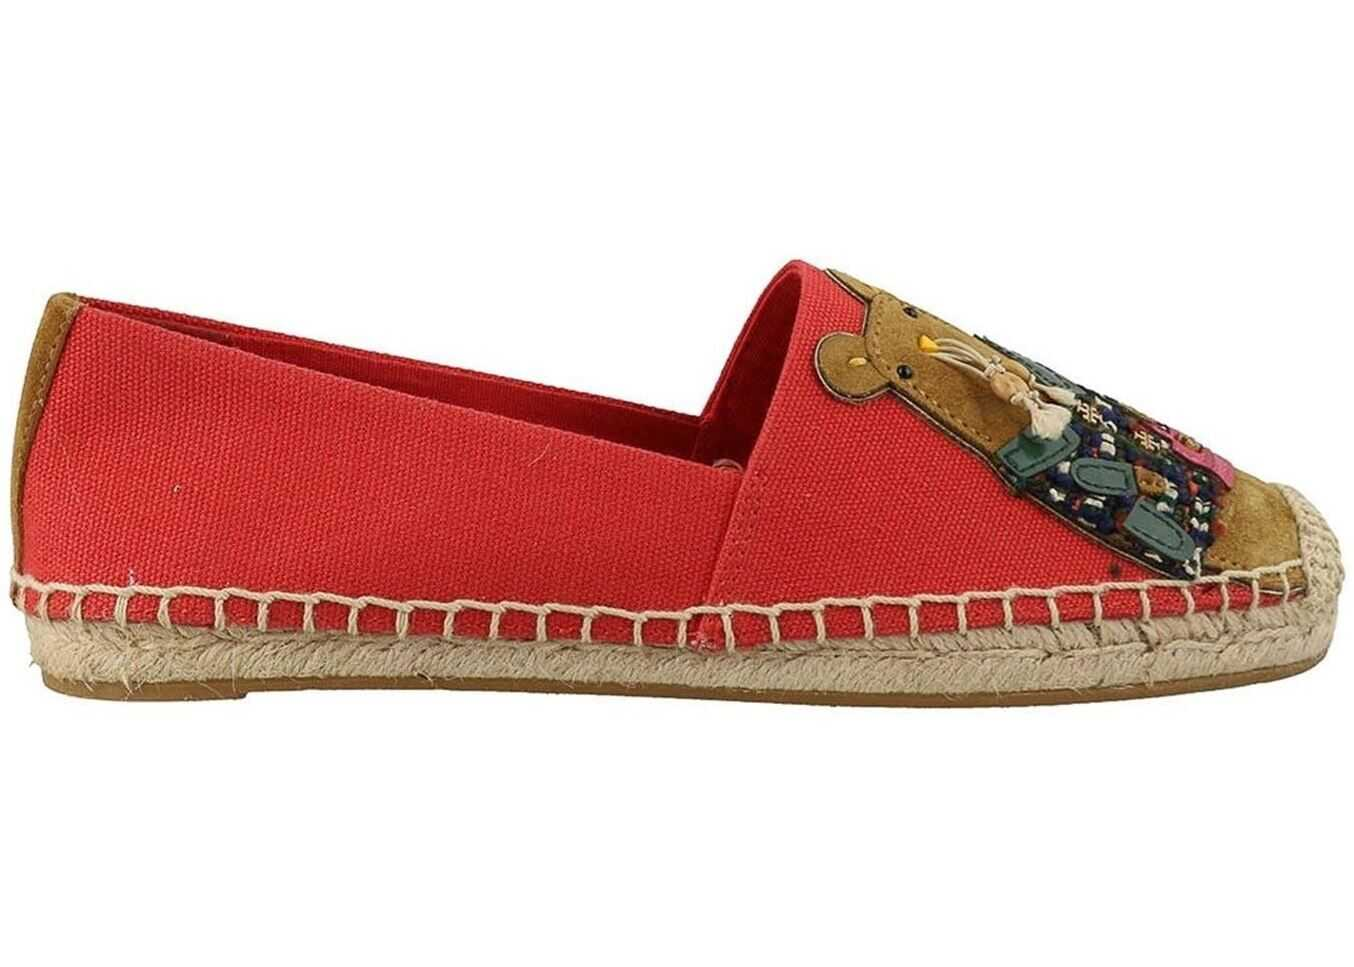 Tory Burch Rita The Rat Canvas Espadrilles Red